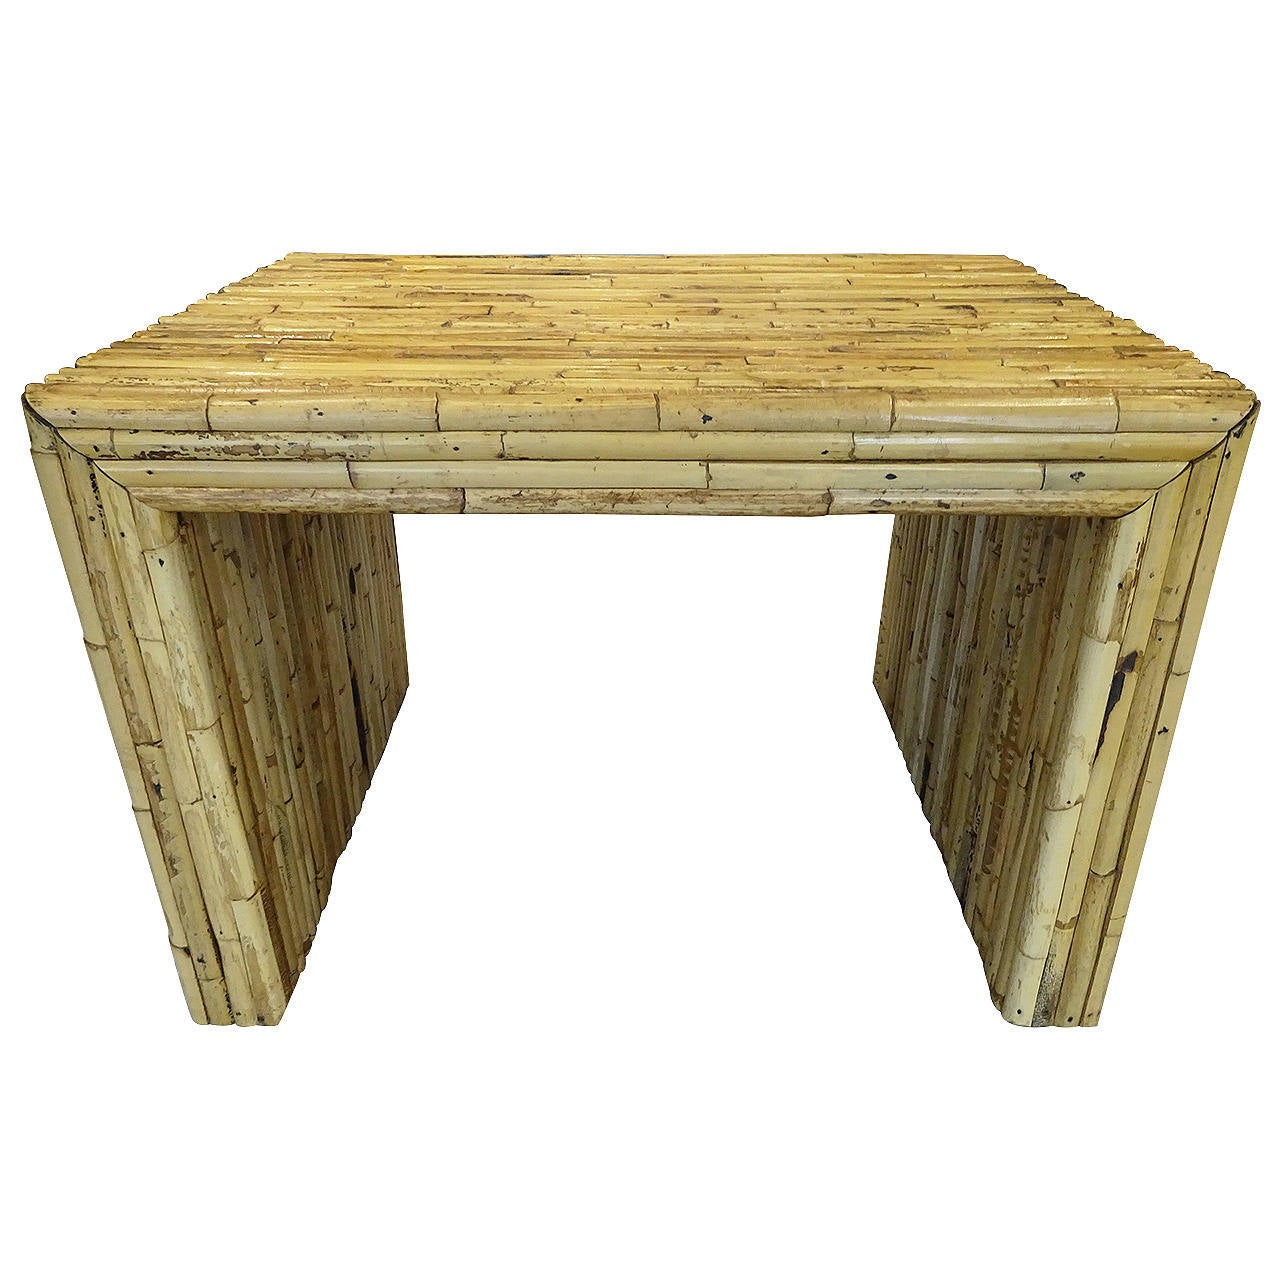 Architectural bamboo coffee table at 1stdibs for Architectural coffee table